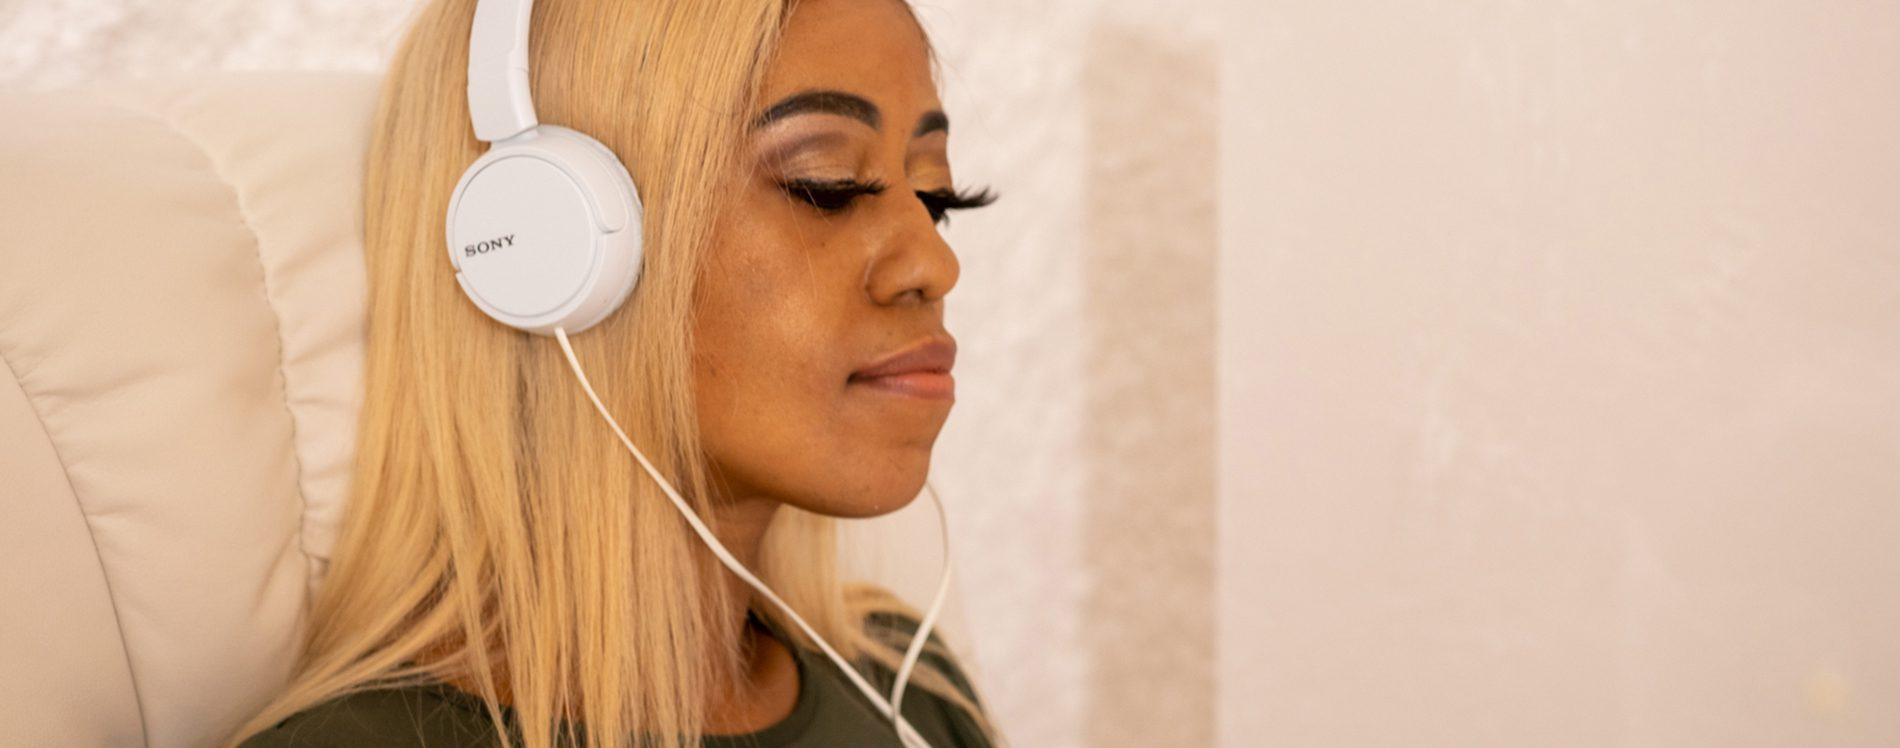 Close up of a black woman with headphones relaxing in a salt room.